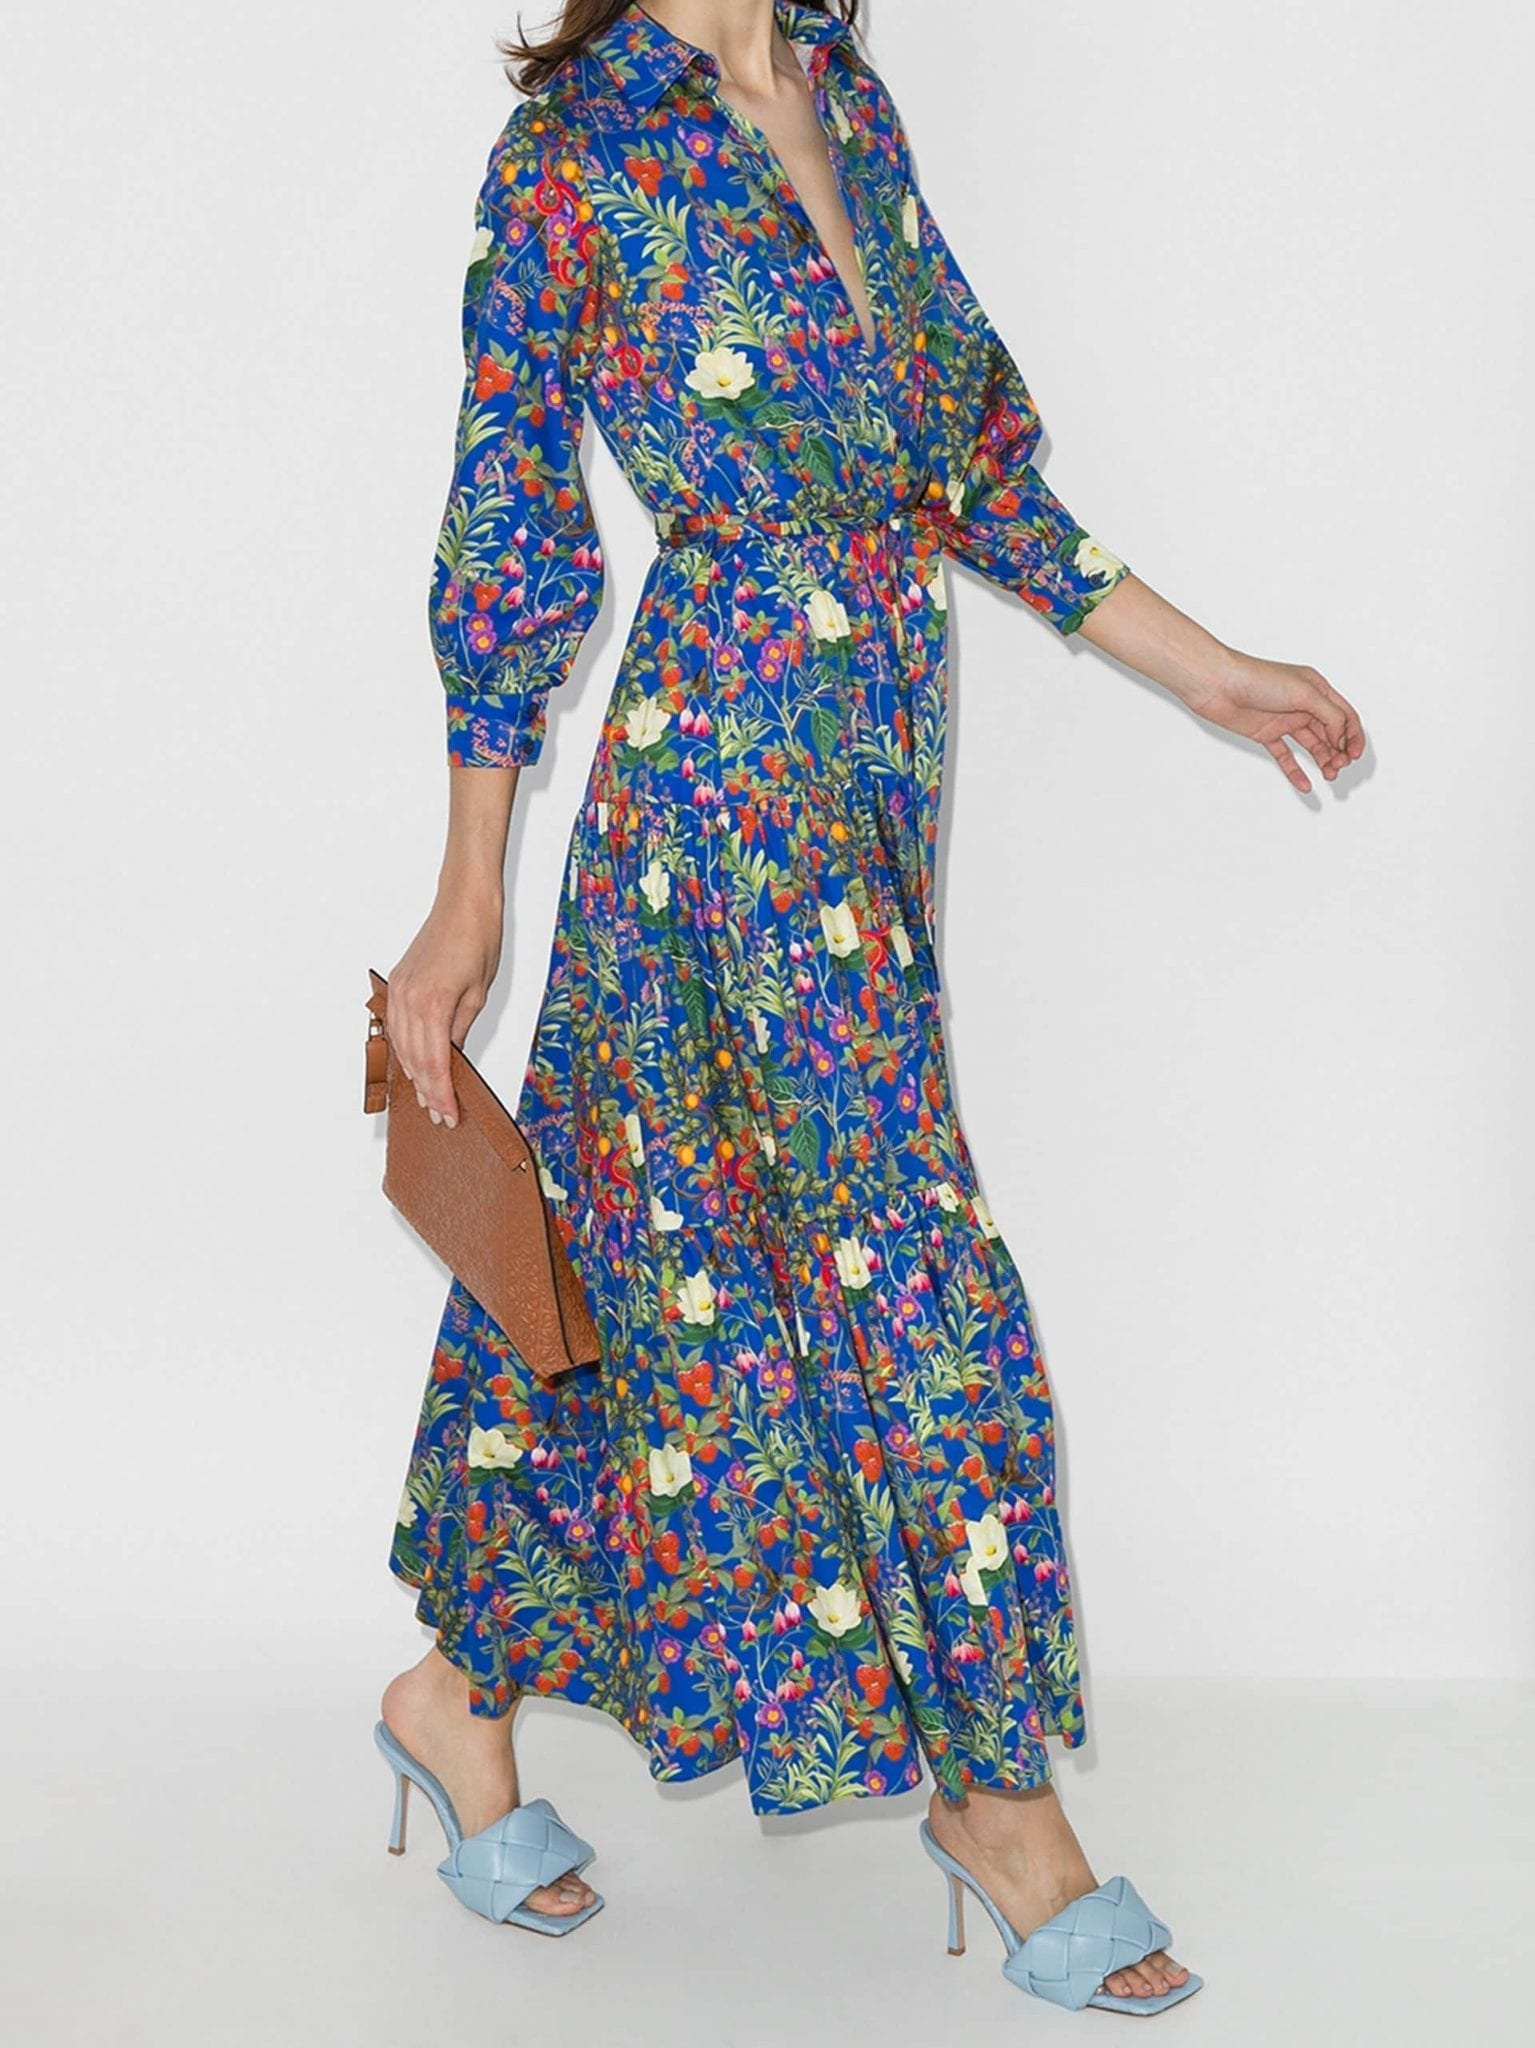 BORGO DE NOR Clarissa Floral Shirt Dress